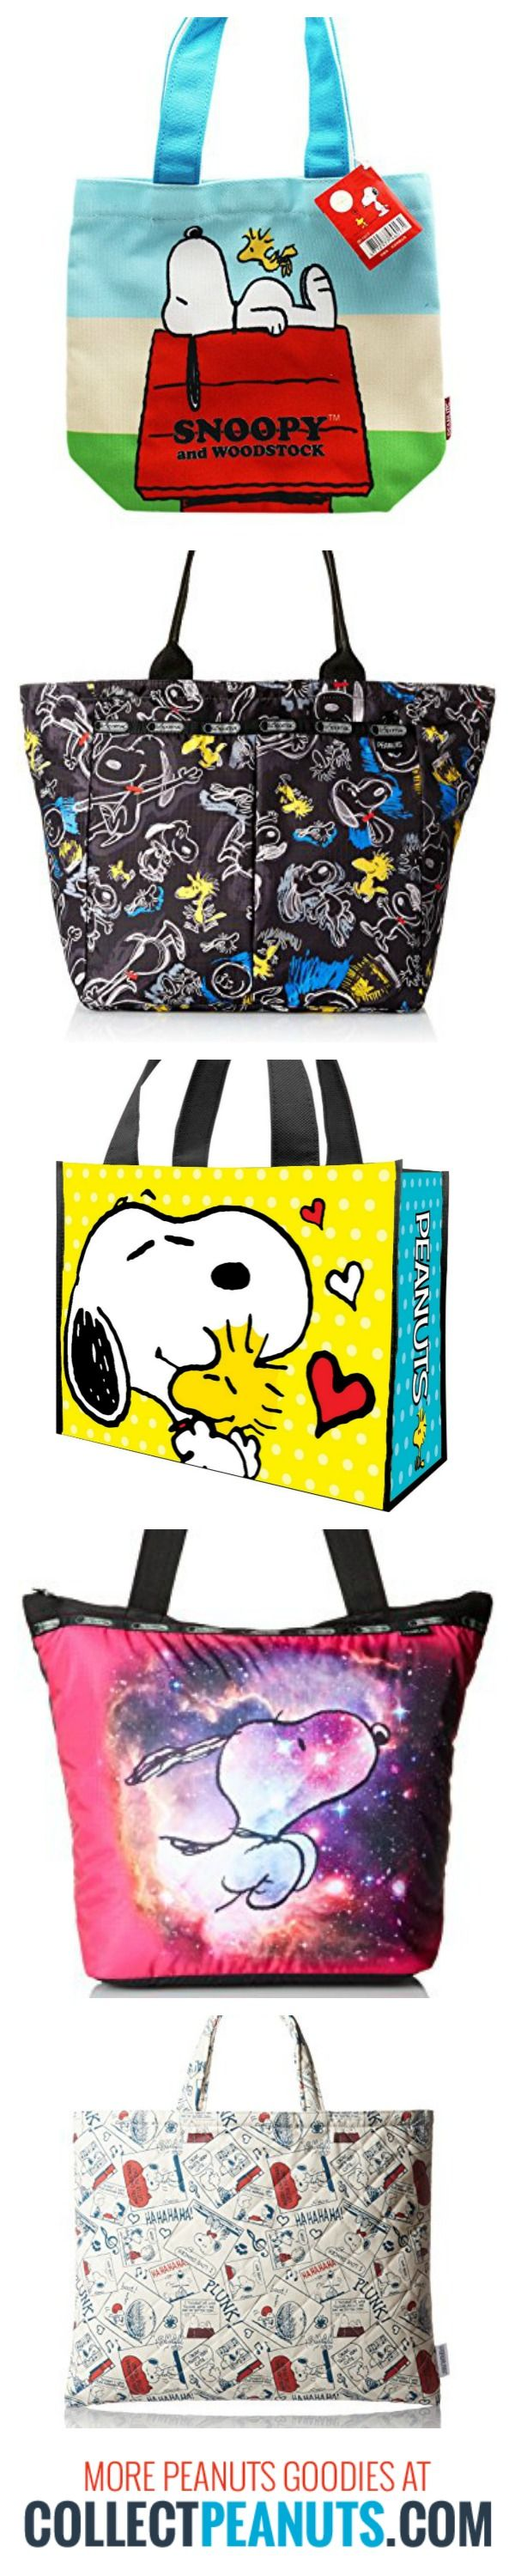 Carry on, Snoopy! When you're on the go, Snoopy keeps everything at hand with Peanuts backpacks, bags, purses and totes. Start shopping via CollectPeanuts.com.